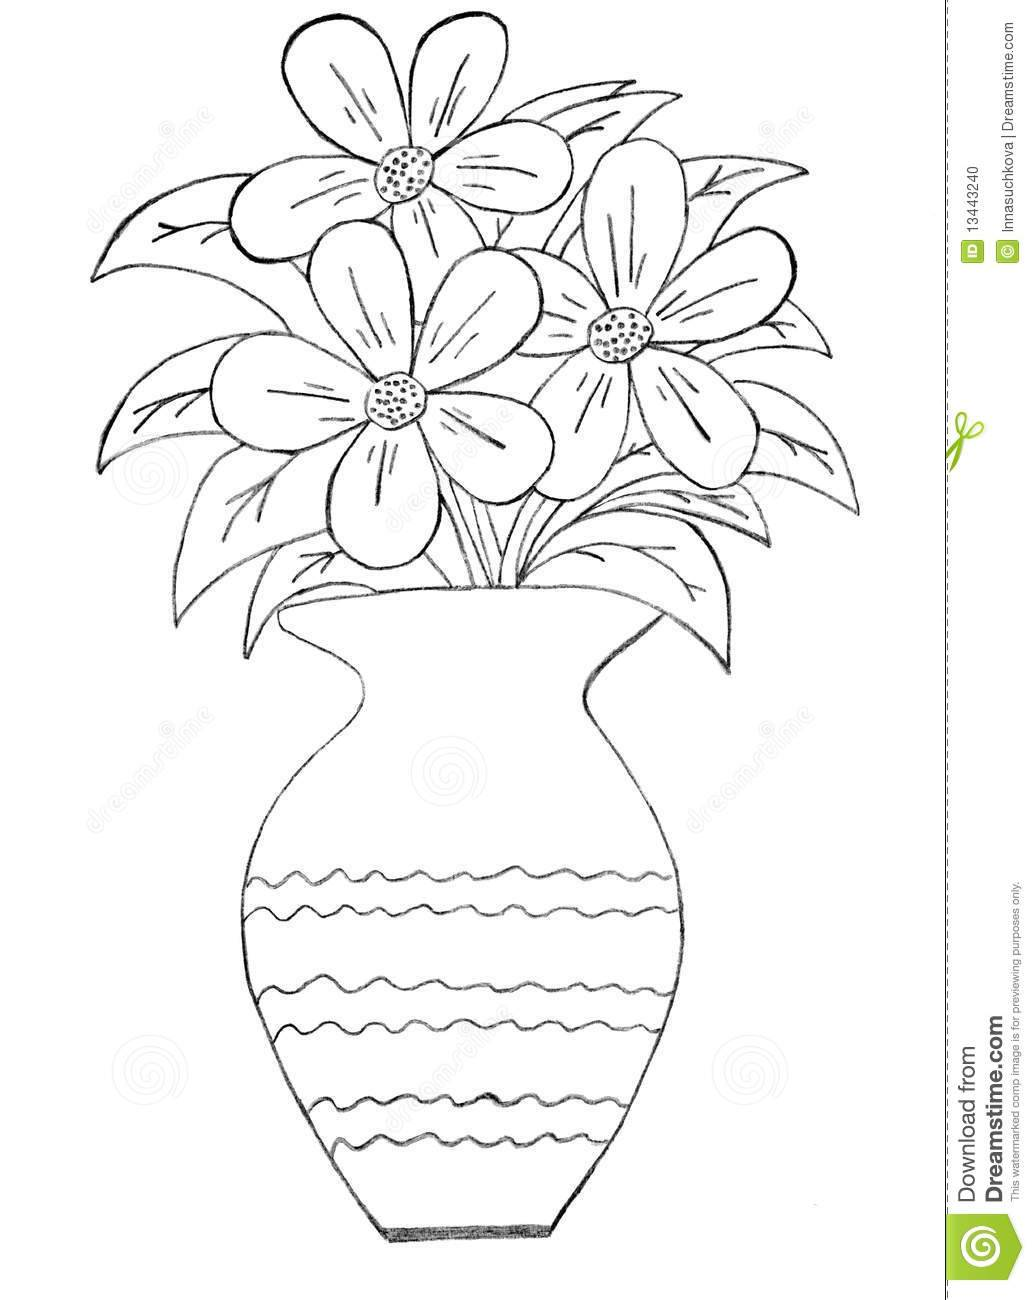 Drawn rose vase drawing Guide of  And Ideas